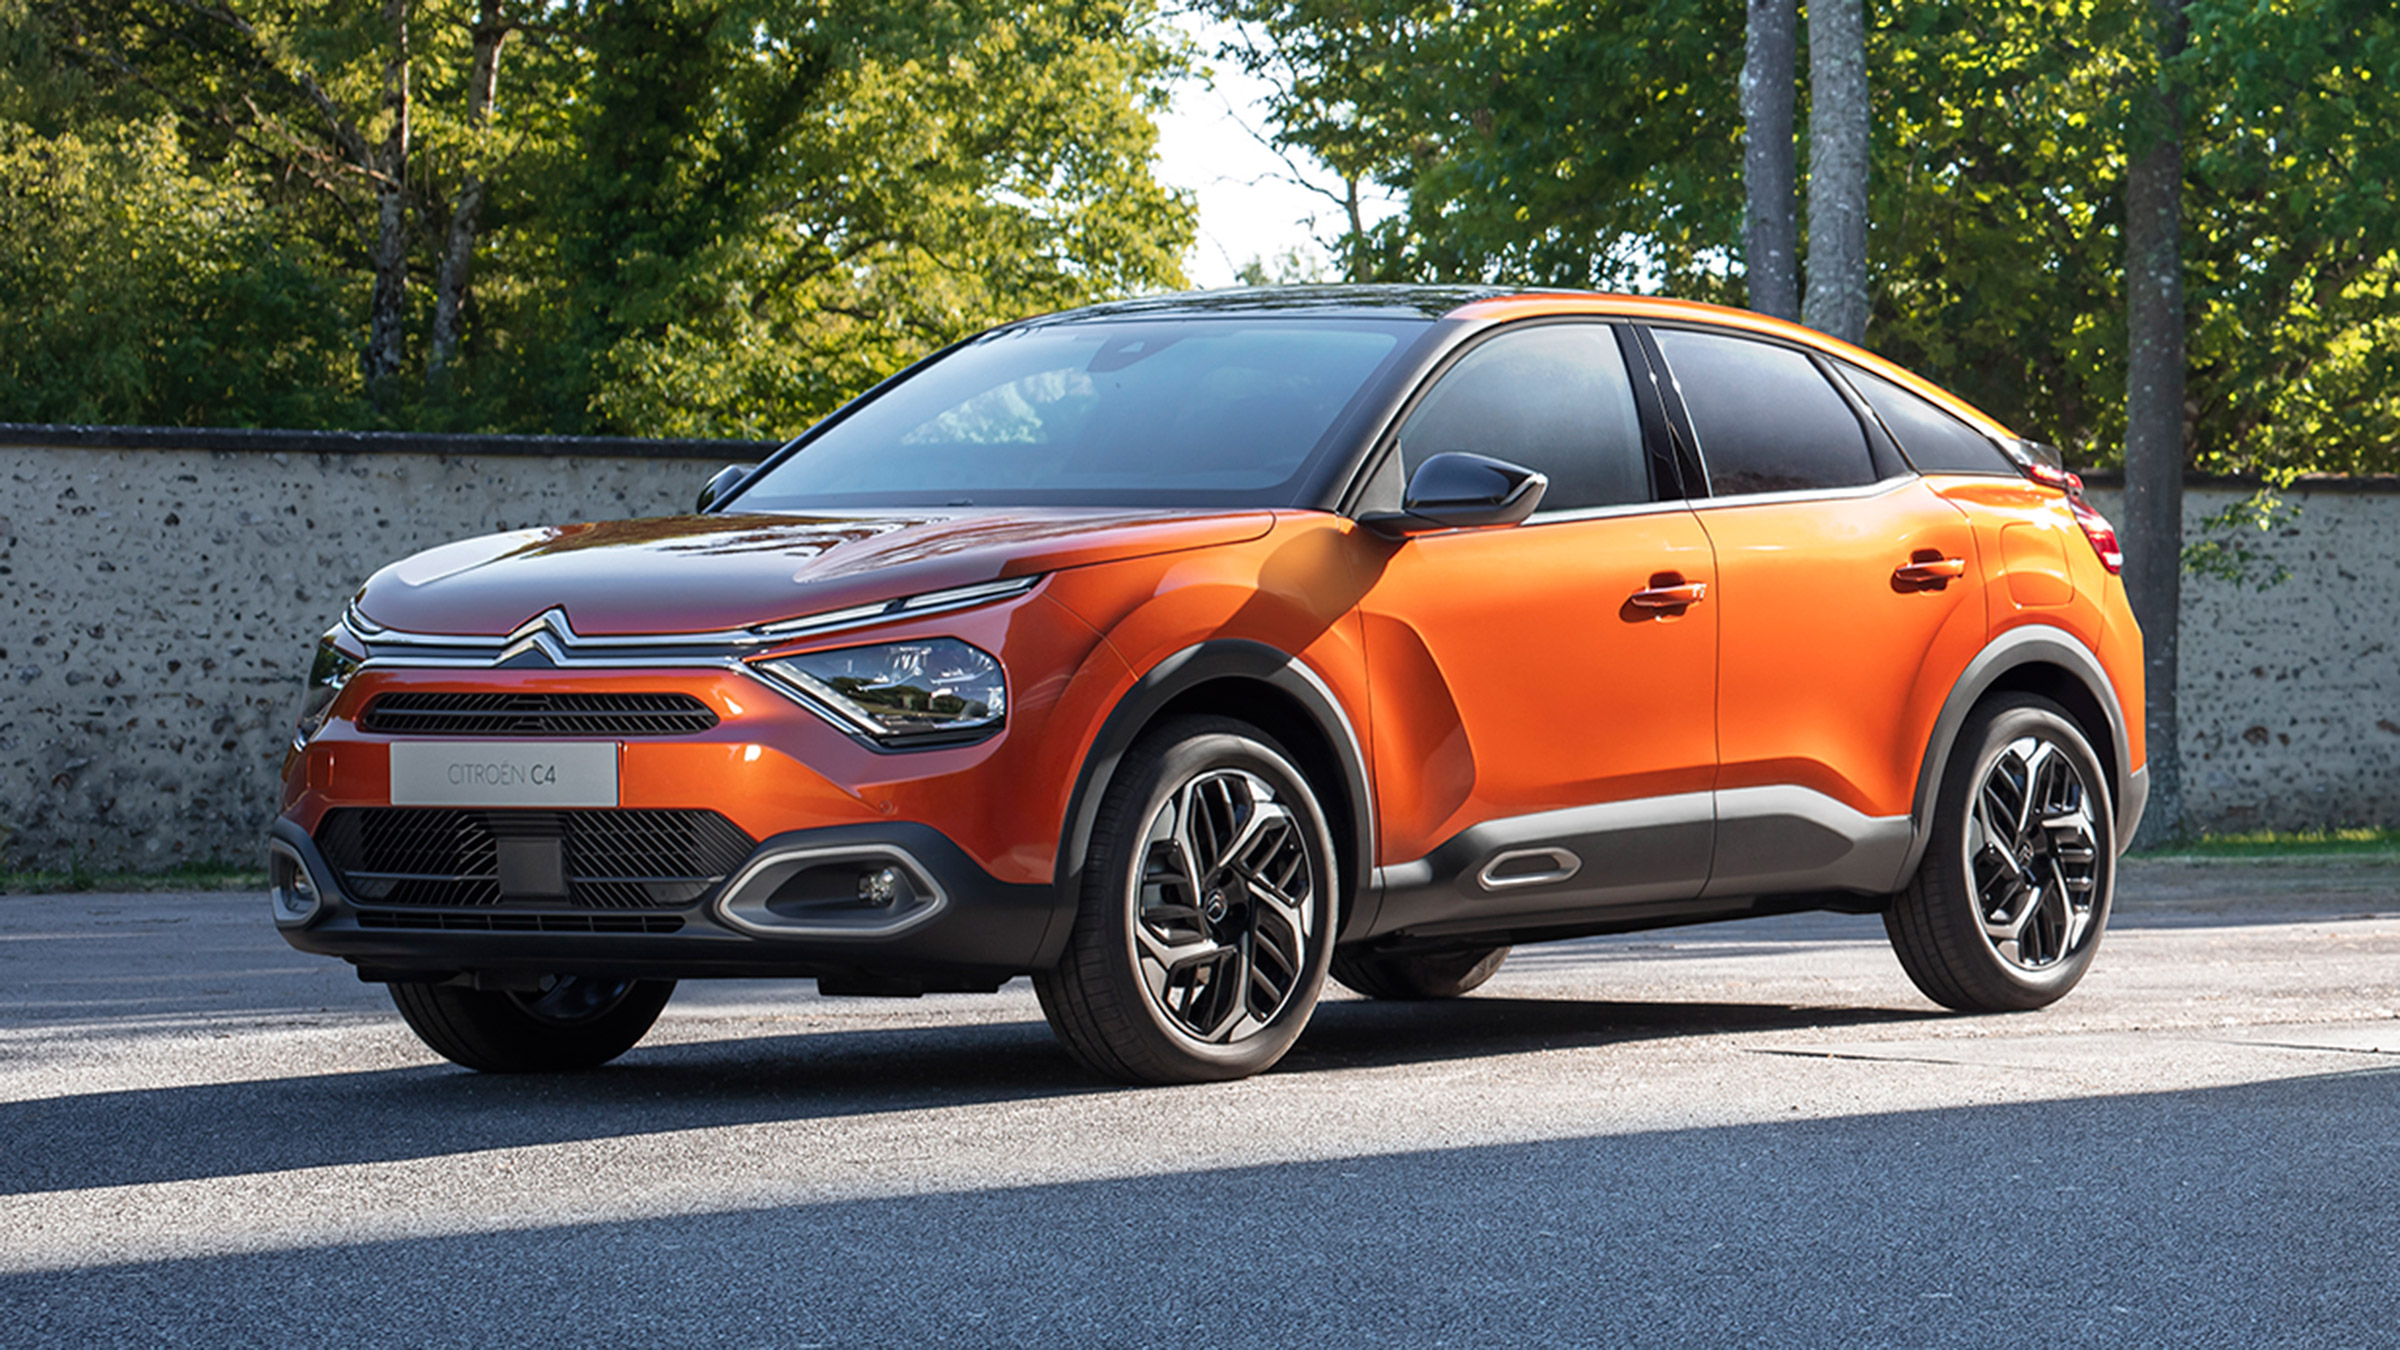 new citroen c4 morphs into crossover with petrol diesel